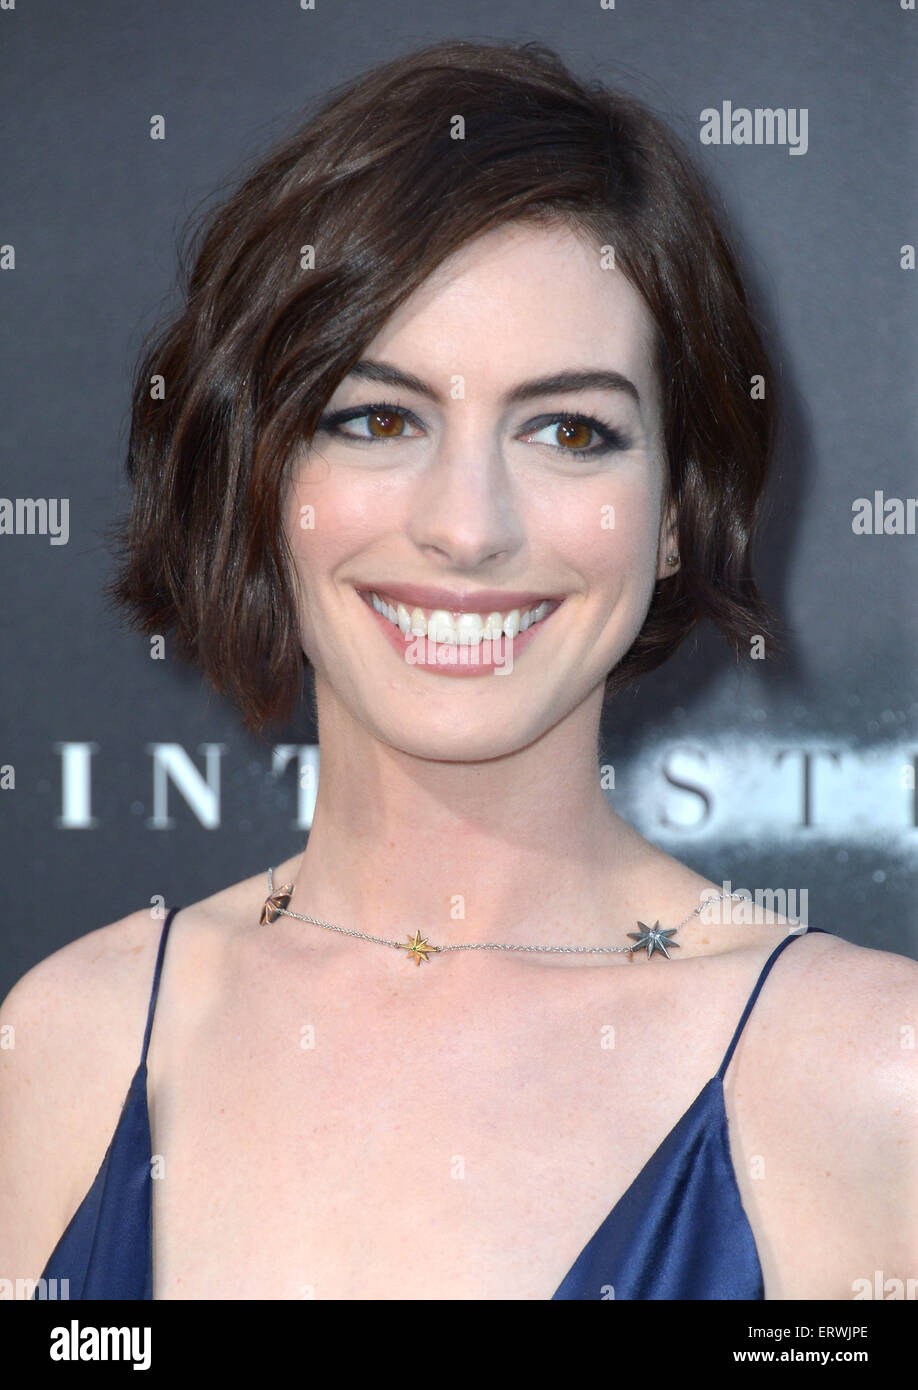 Actress Anne Hathaway, Los Angeles, CA - Stock Image